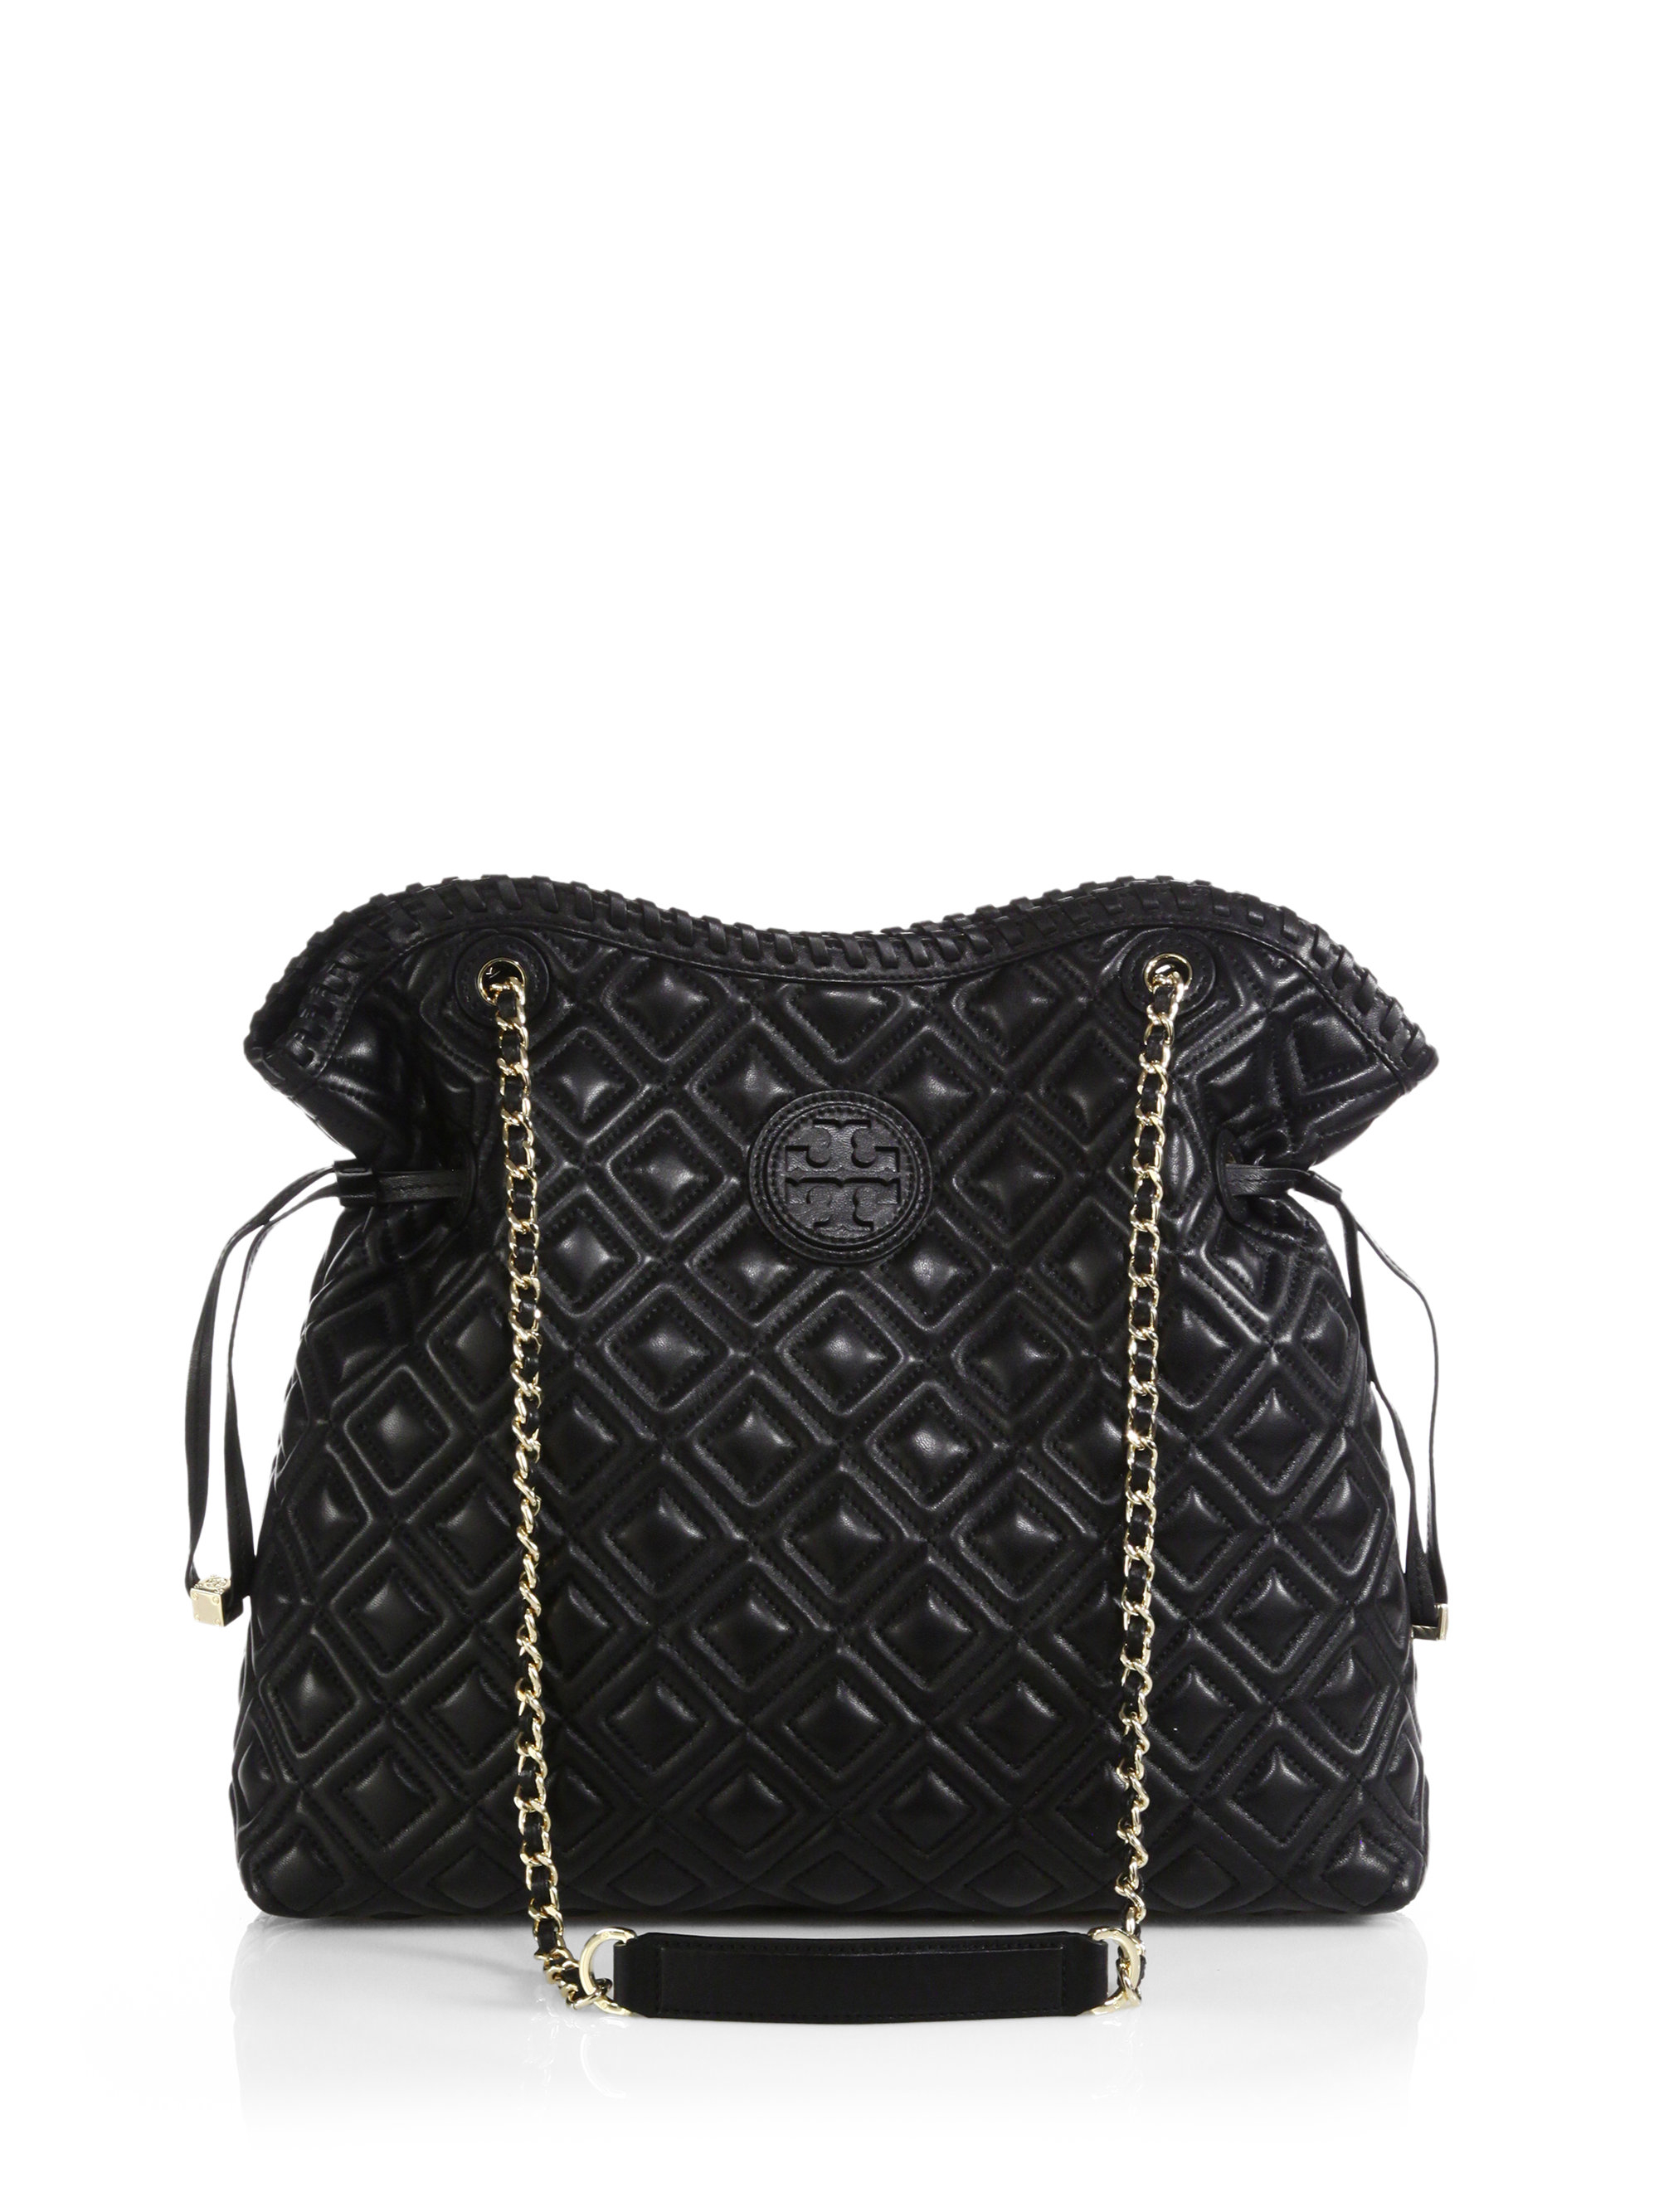 Lyst - Tory burch Marion Quilted Slouchy Tote in Black : marion quilted - Adamdwight.com